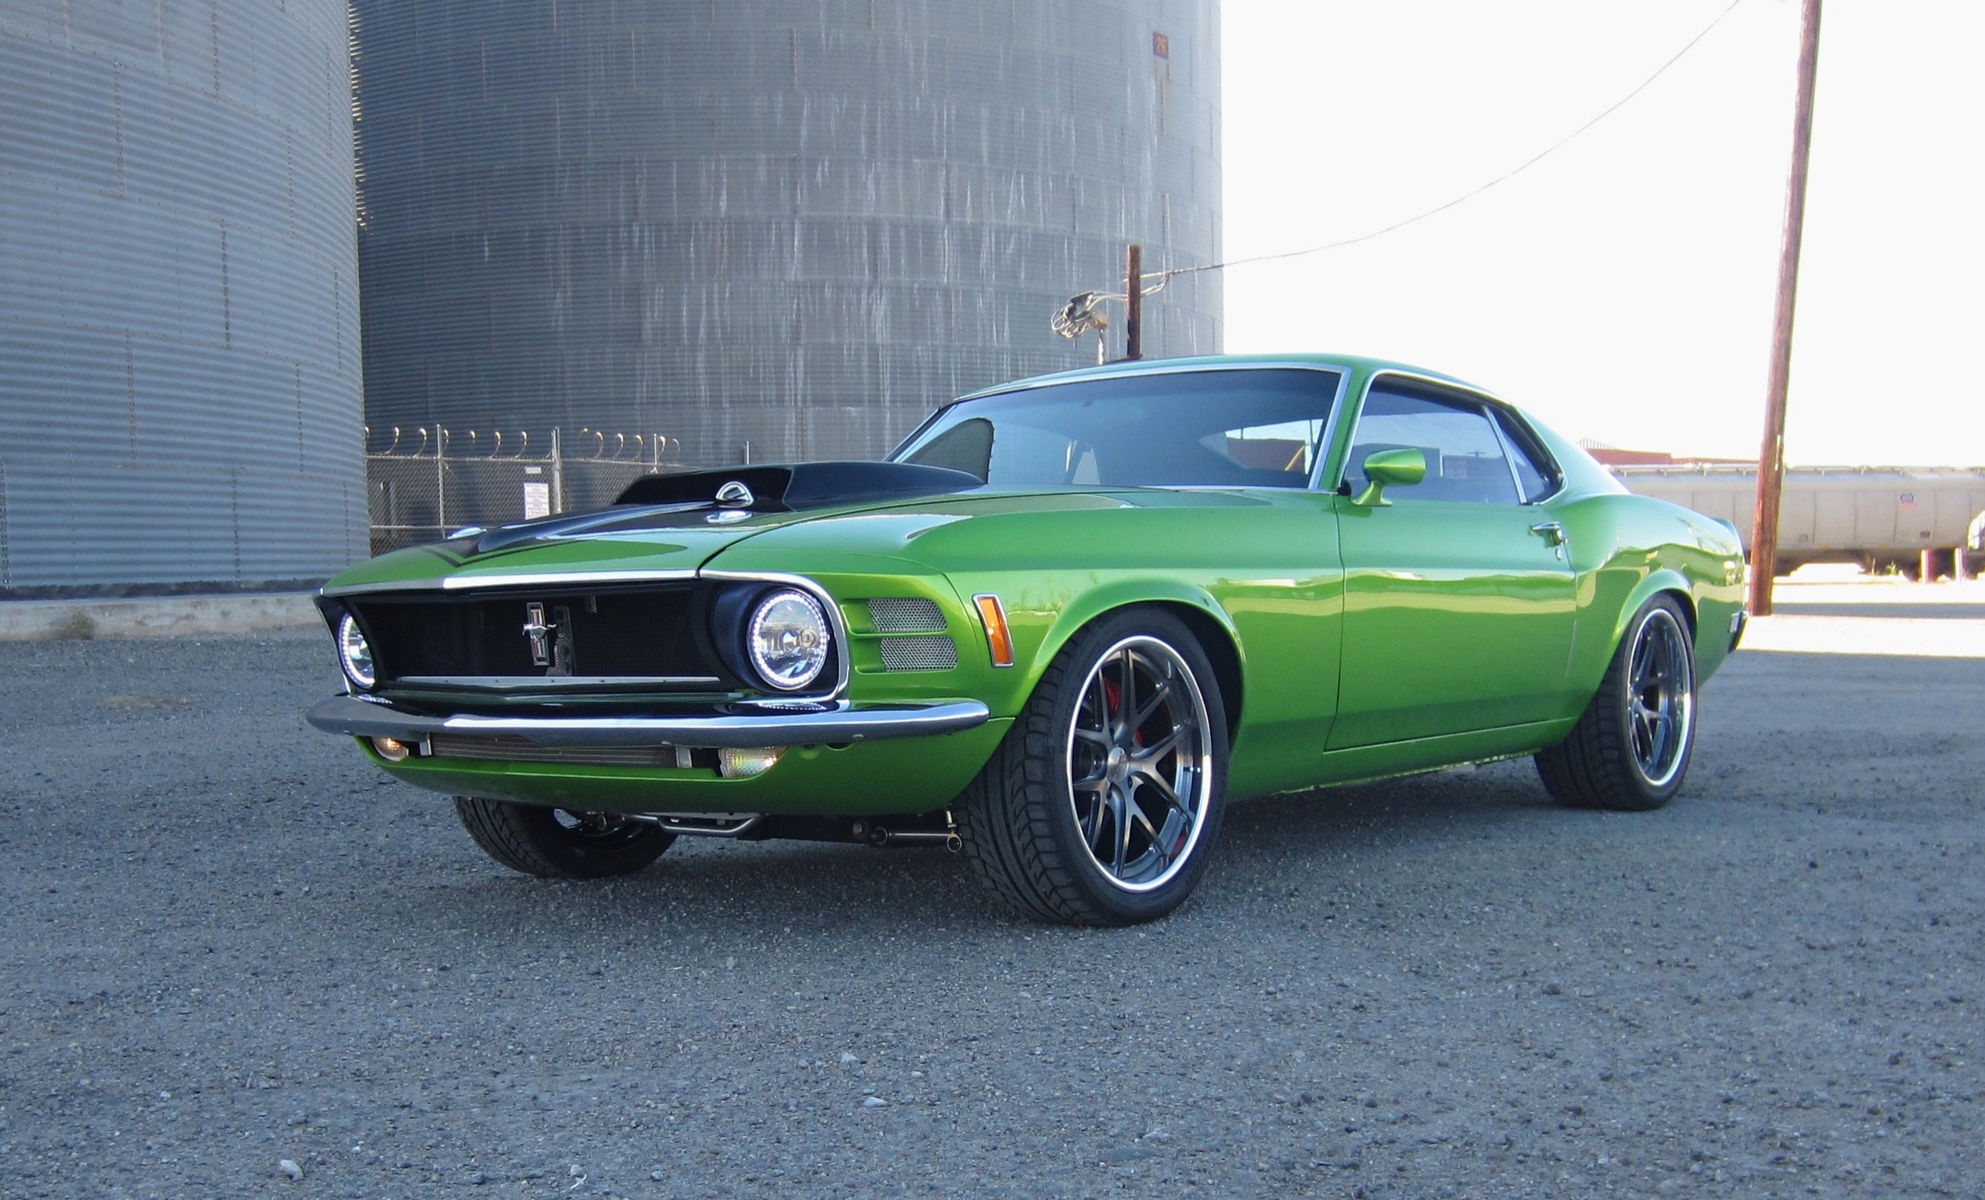 1970 Ford Mustang | Daniel Alameda's Supercharged 4.6L Ford Mustang on Forgeline VX3C Wheels